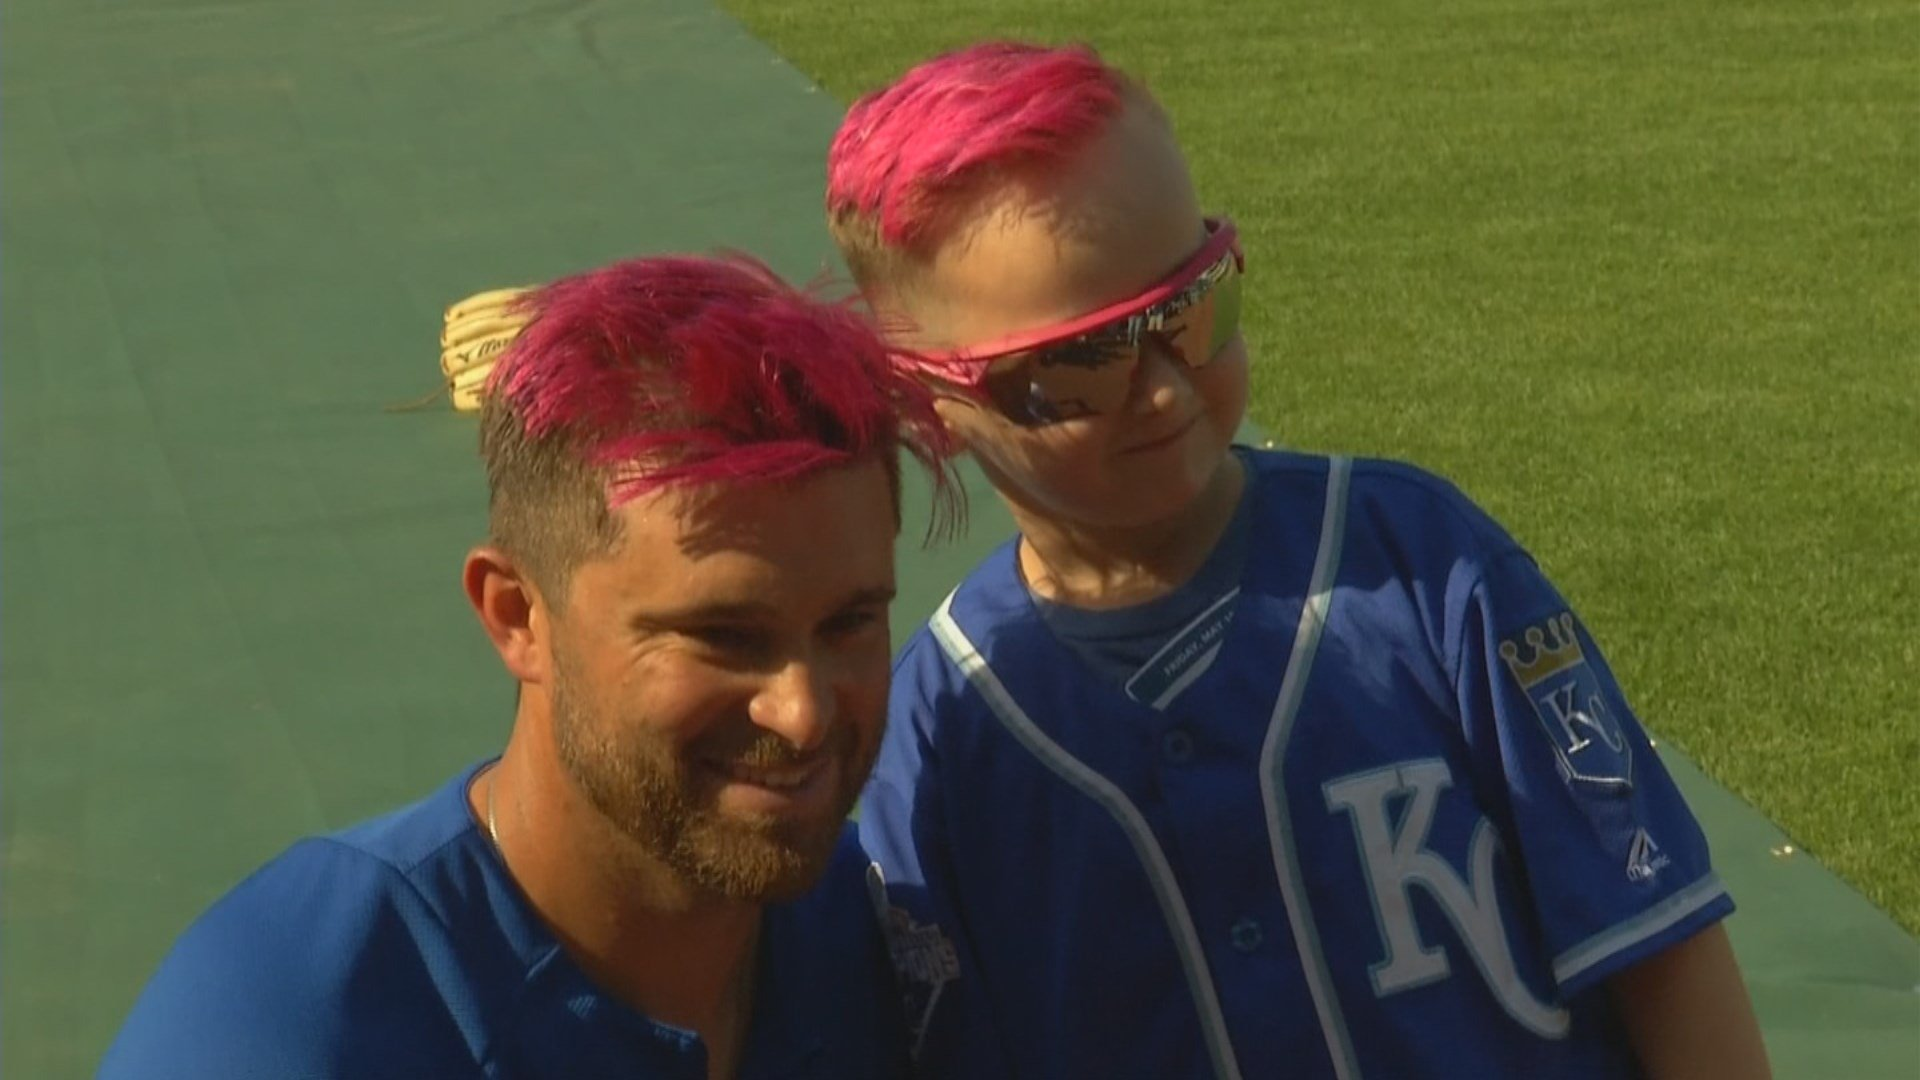 Drew Butera's hair flip, which has become a fan favorite at Kauffman Stadium, is taking a flip of a different kind. (KCTV5)